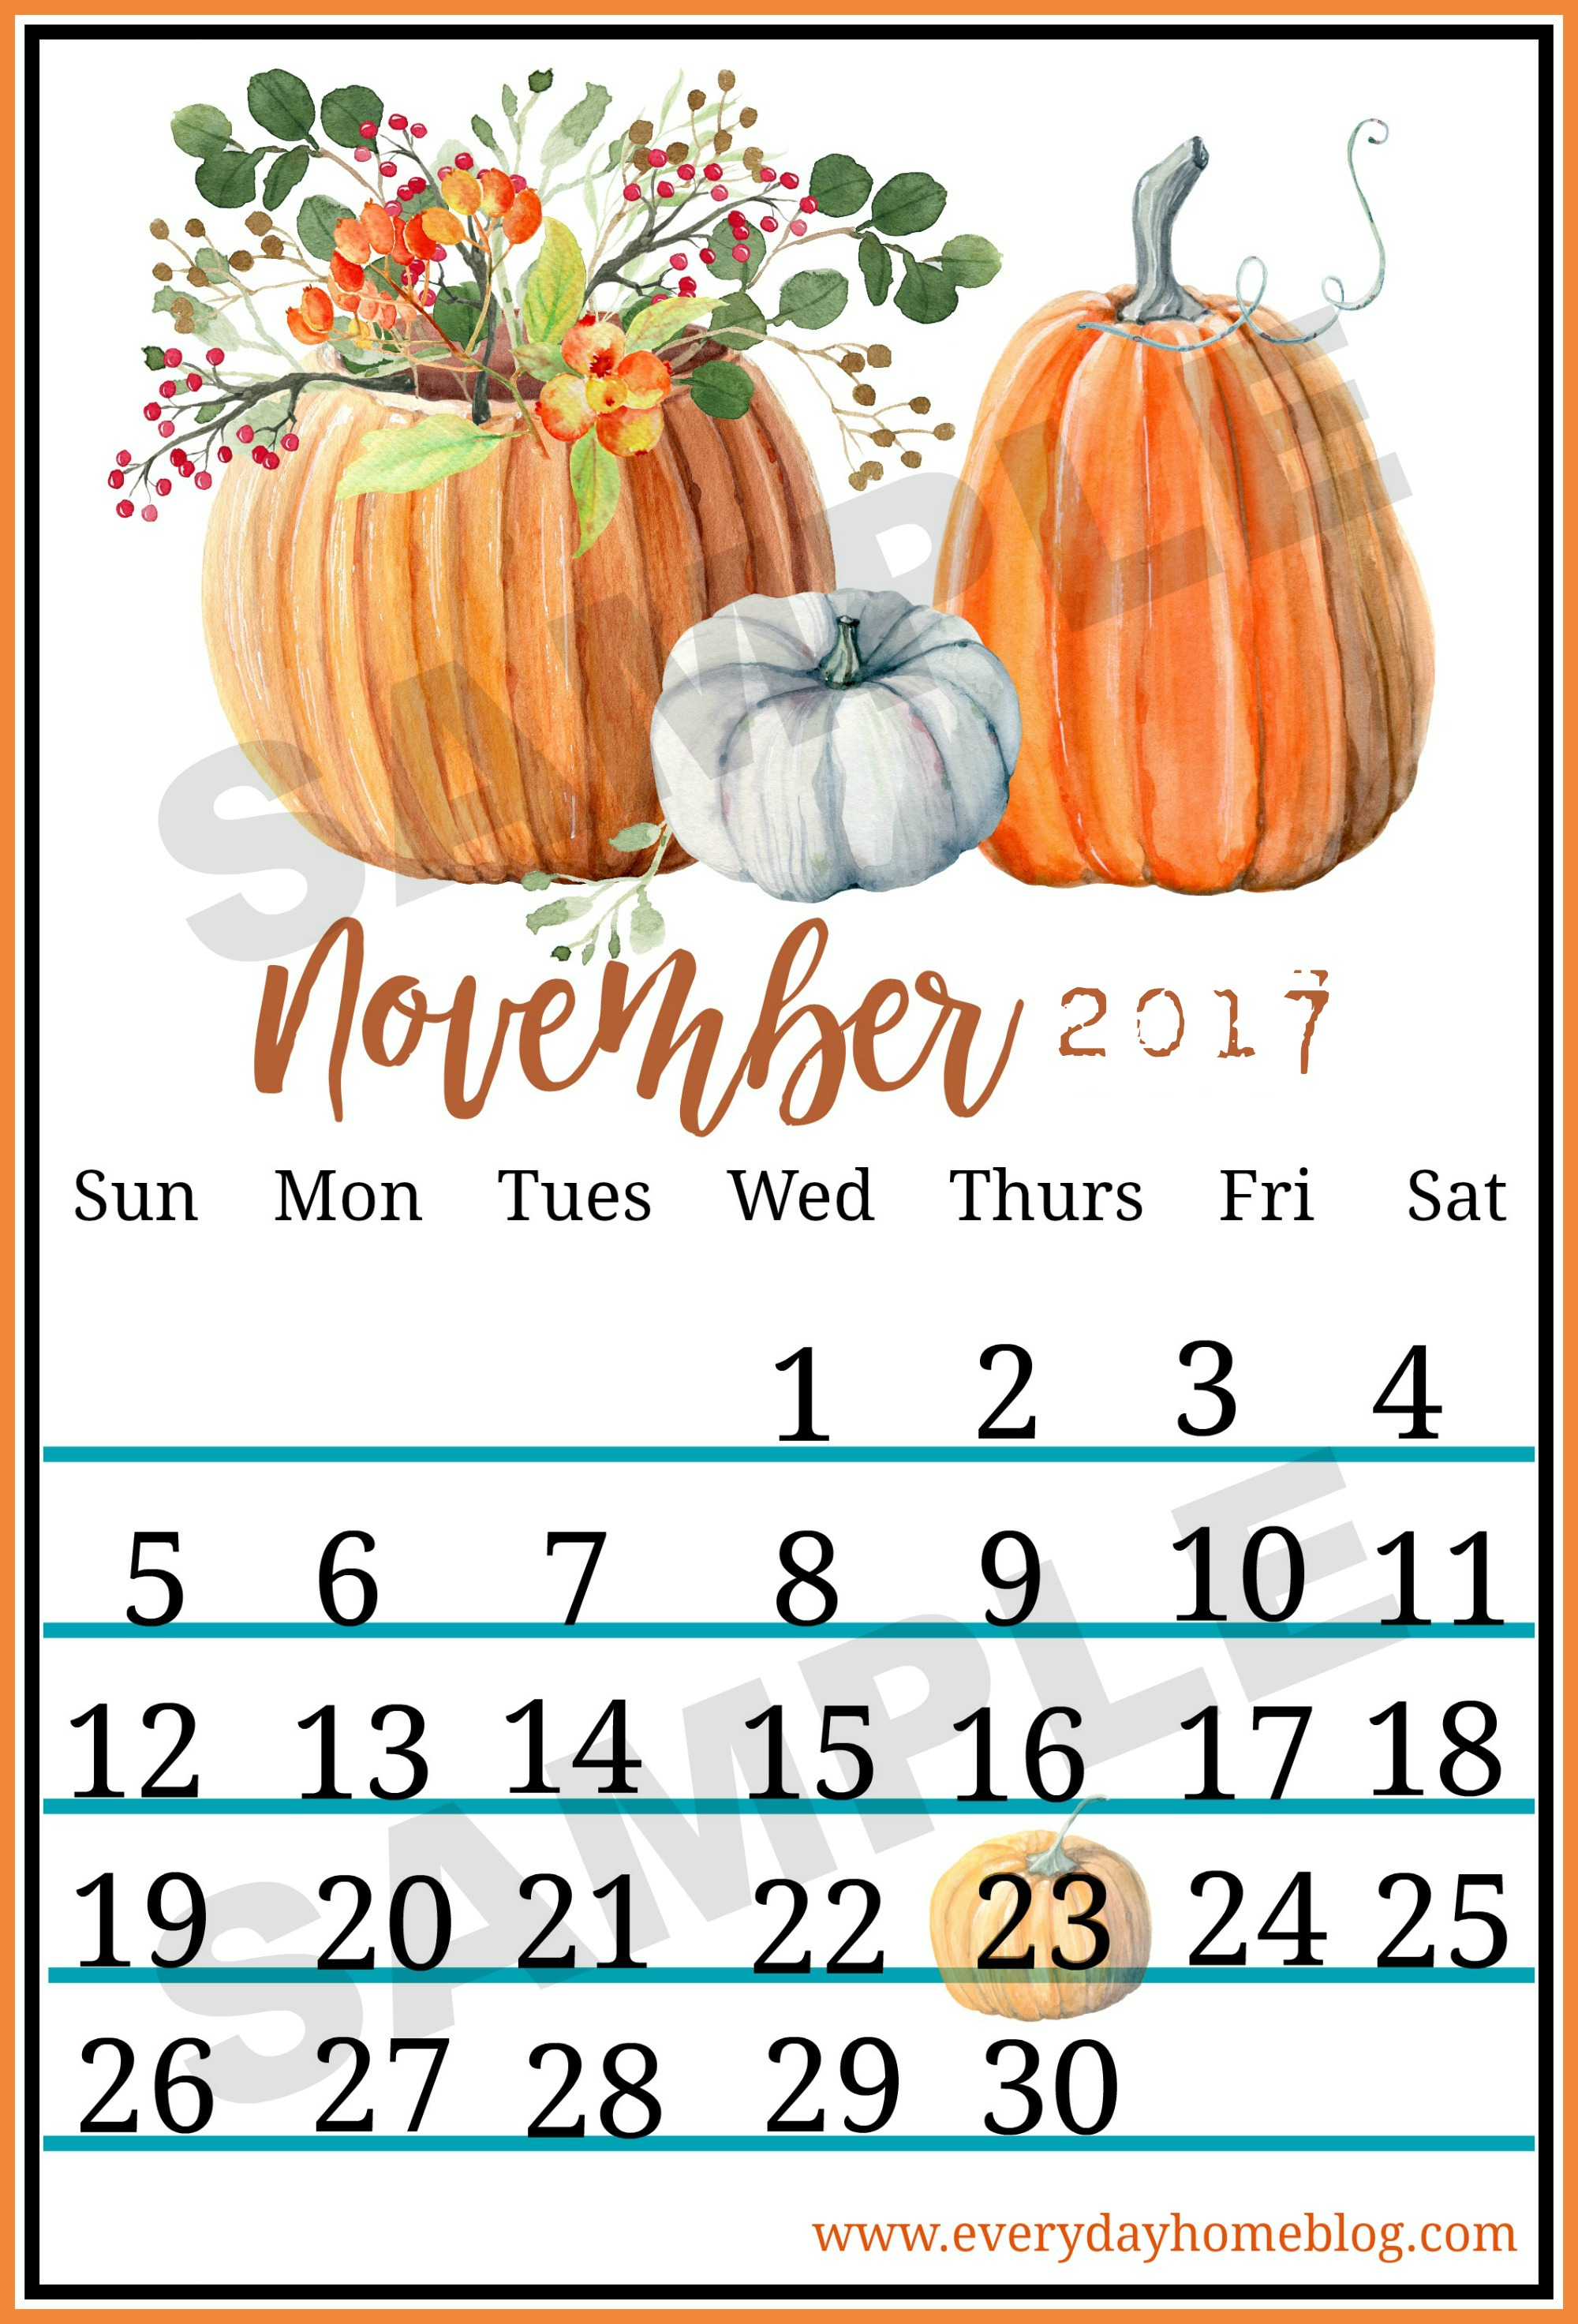 November Fall Calendar Printable The Everyday Home